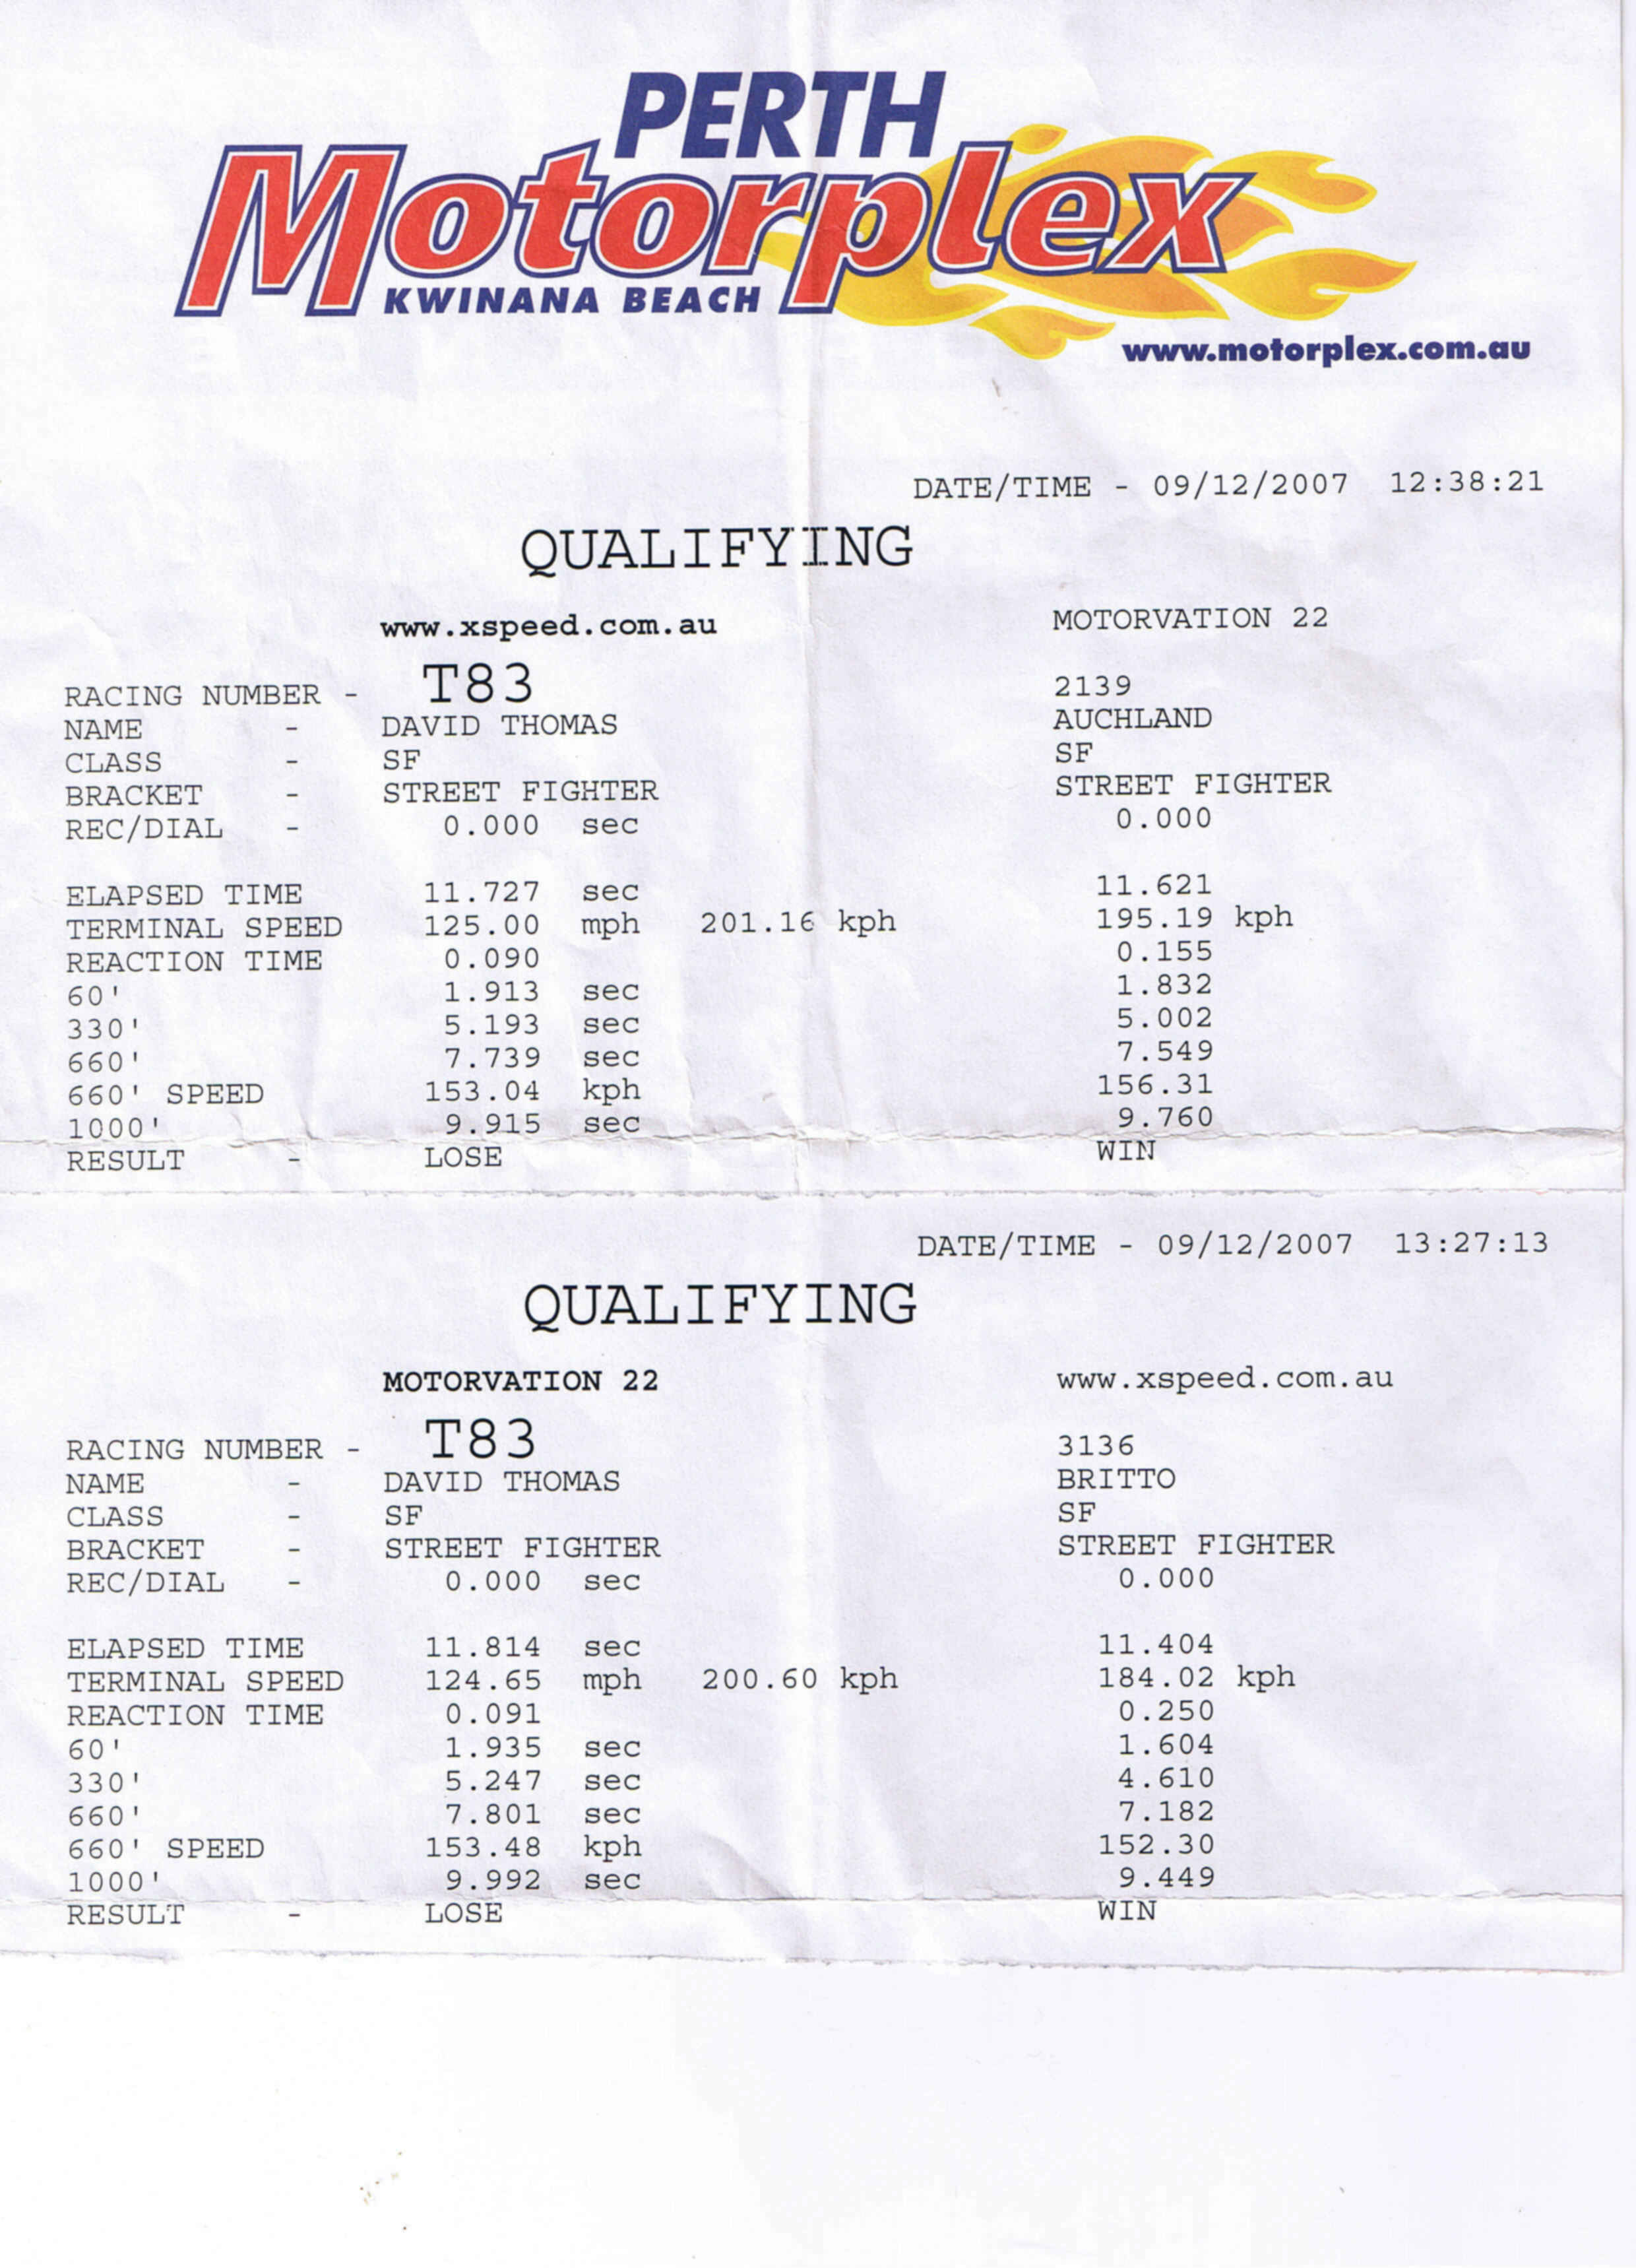 2000 Mitsubishi Diamante Twin Turbo Executive Timeslip Scan